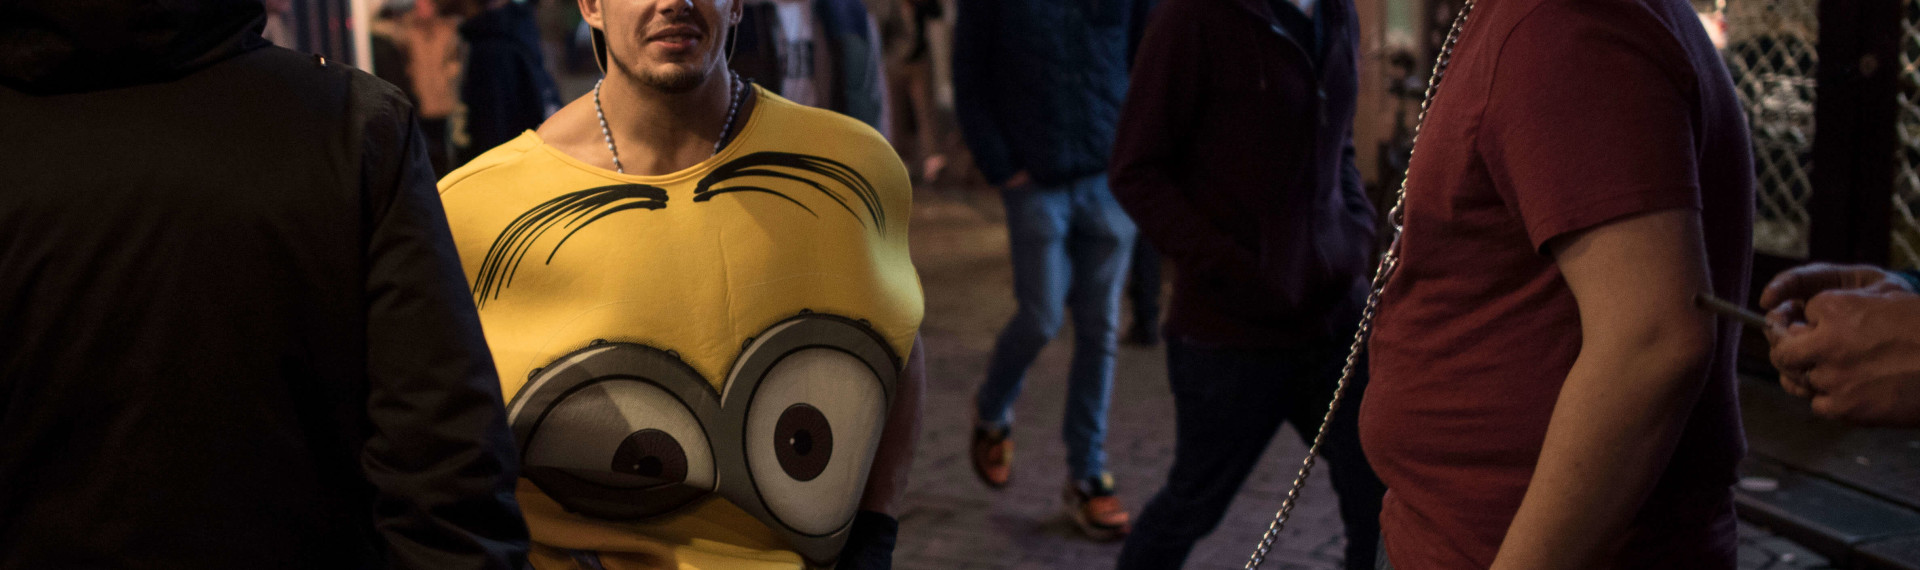 Amsterdam Minion Bar Crawl image